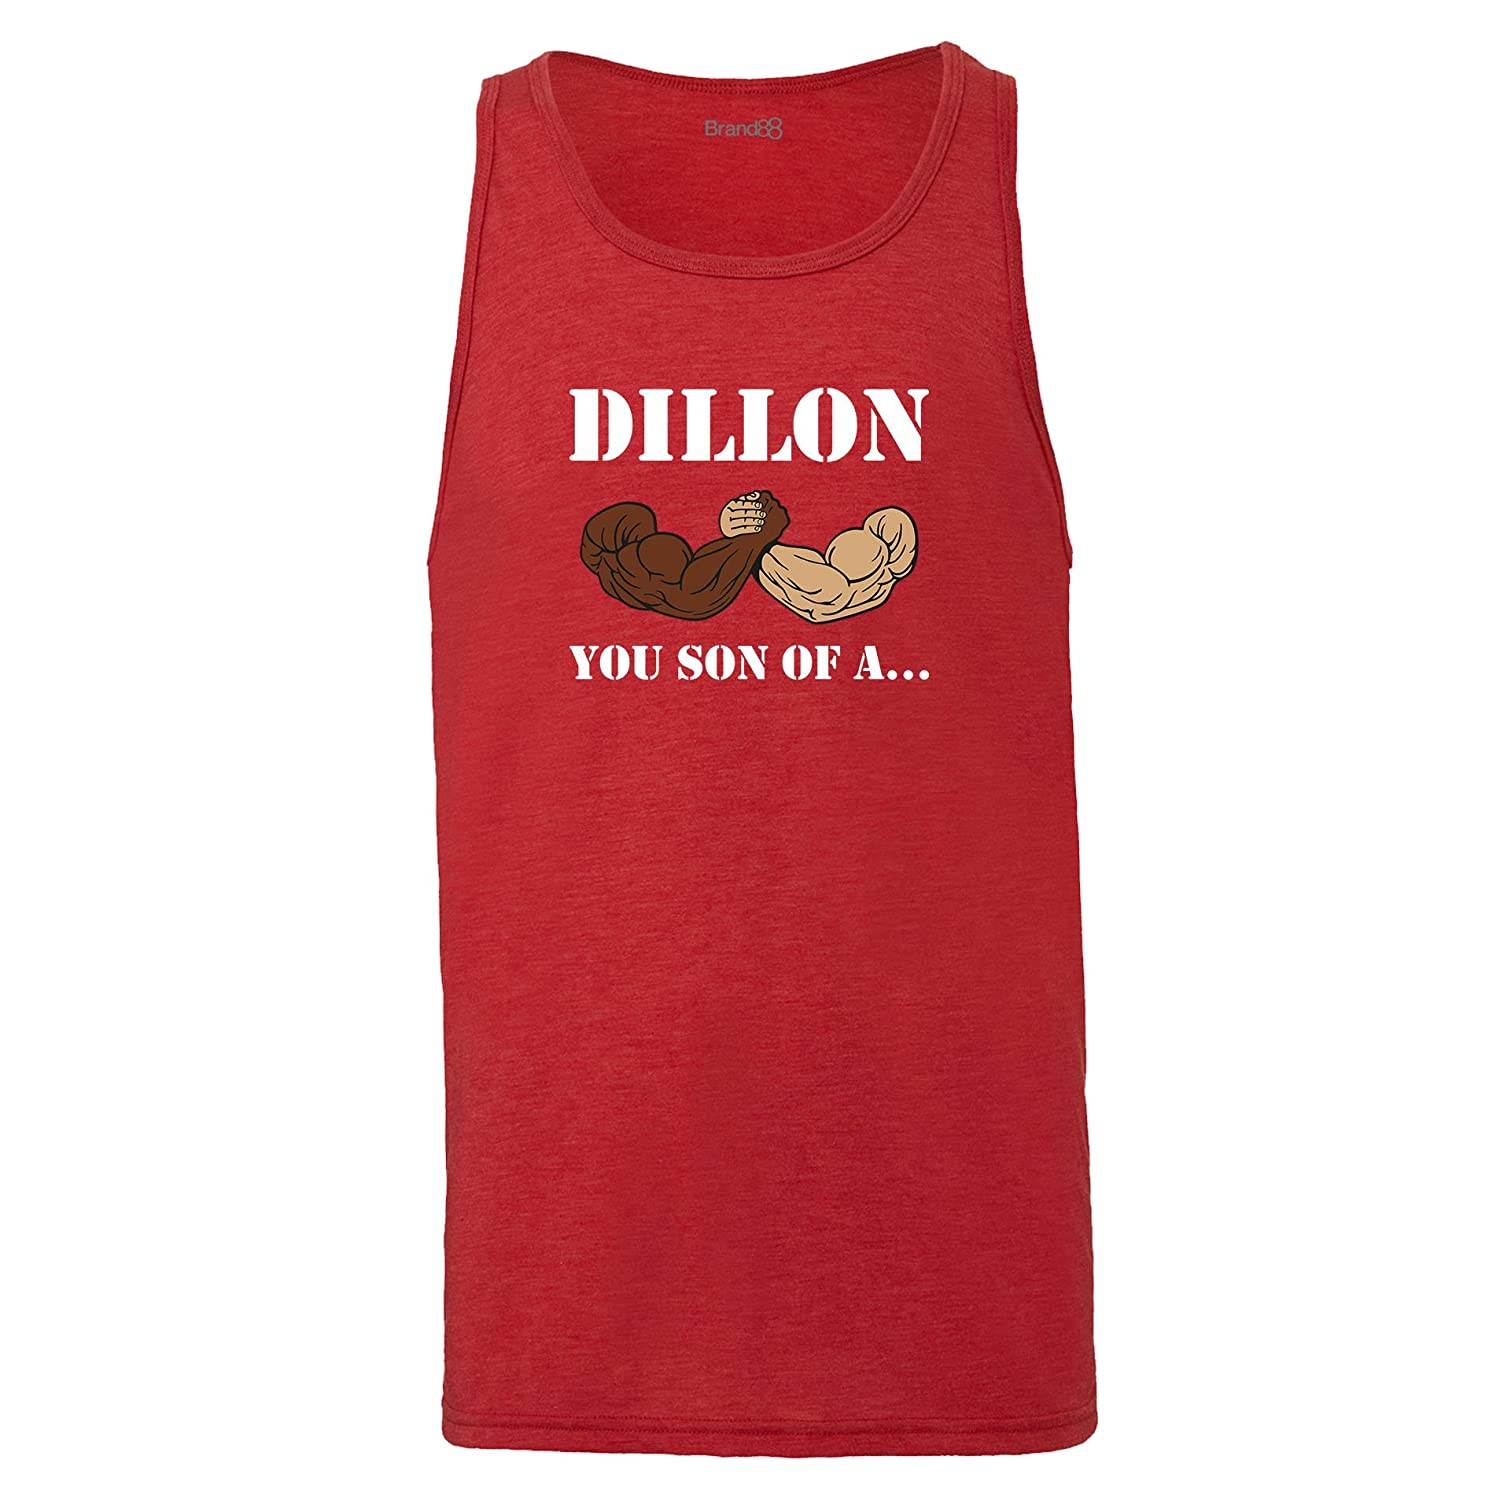 Brand88 Dillon Jersey Vest You Son of A